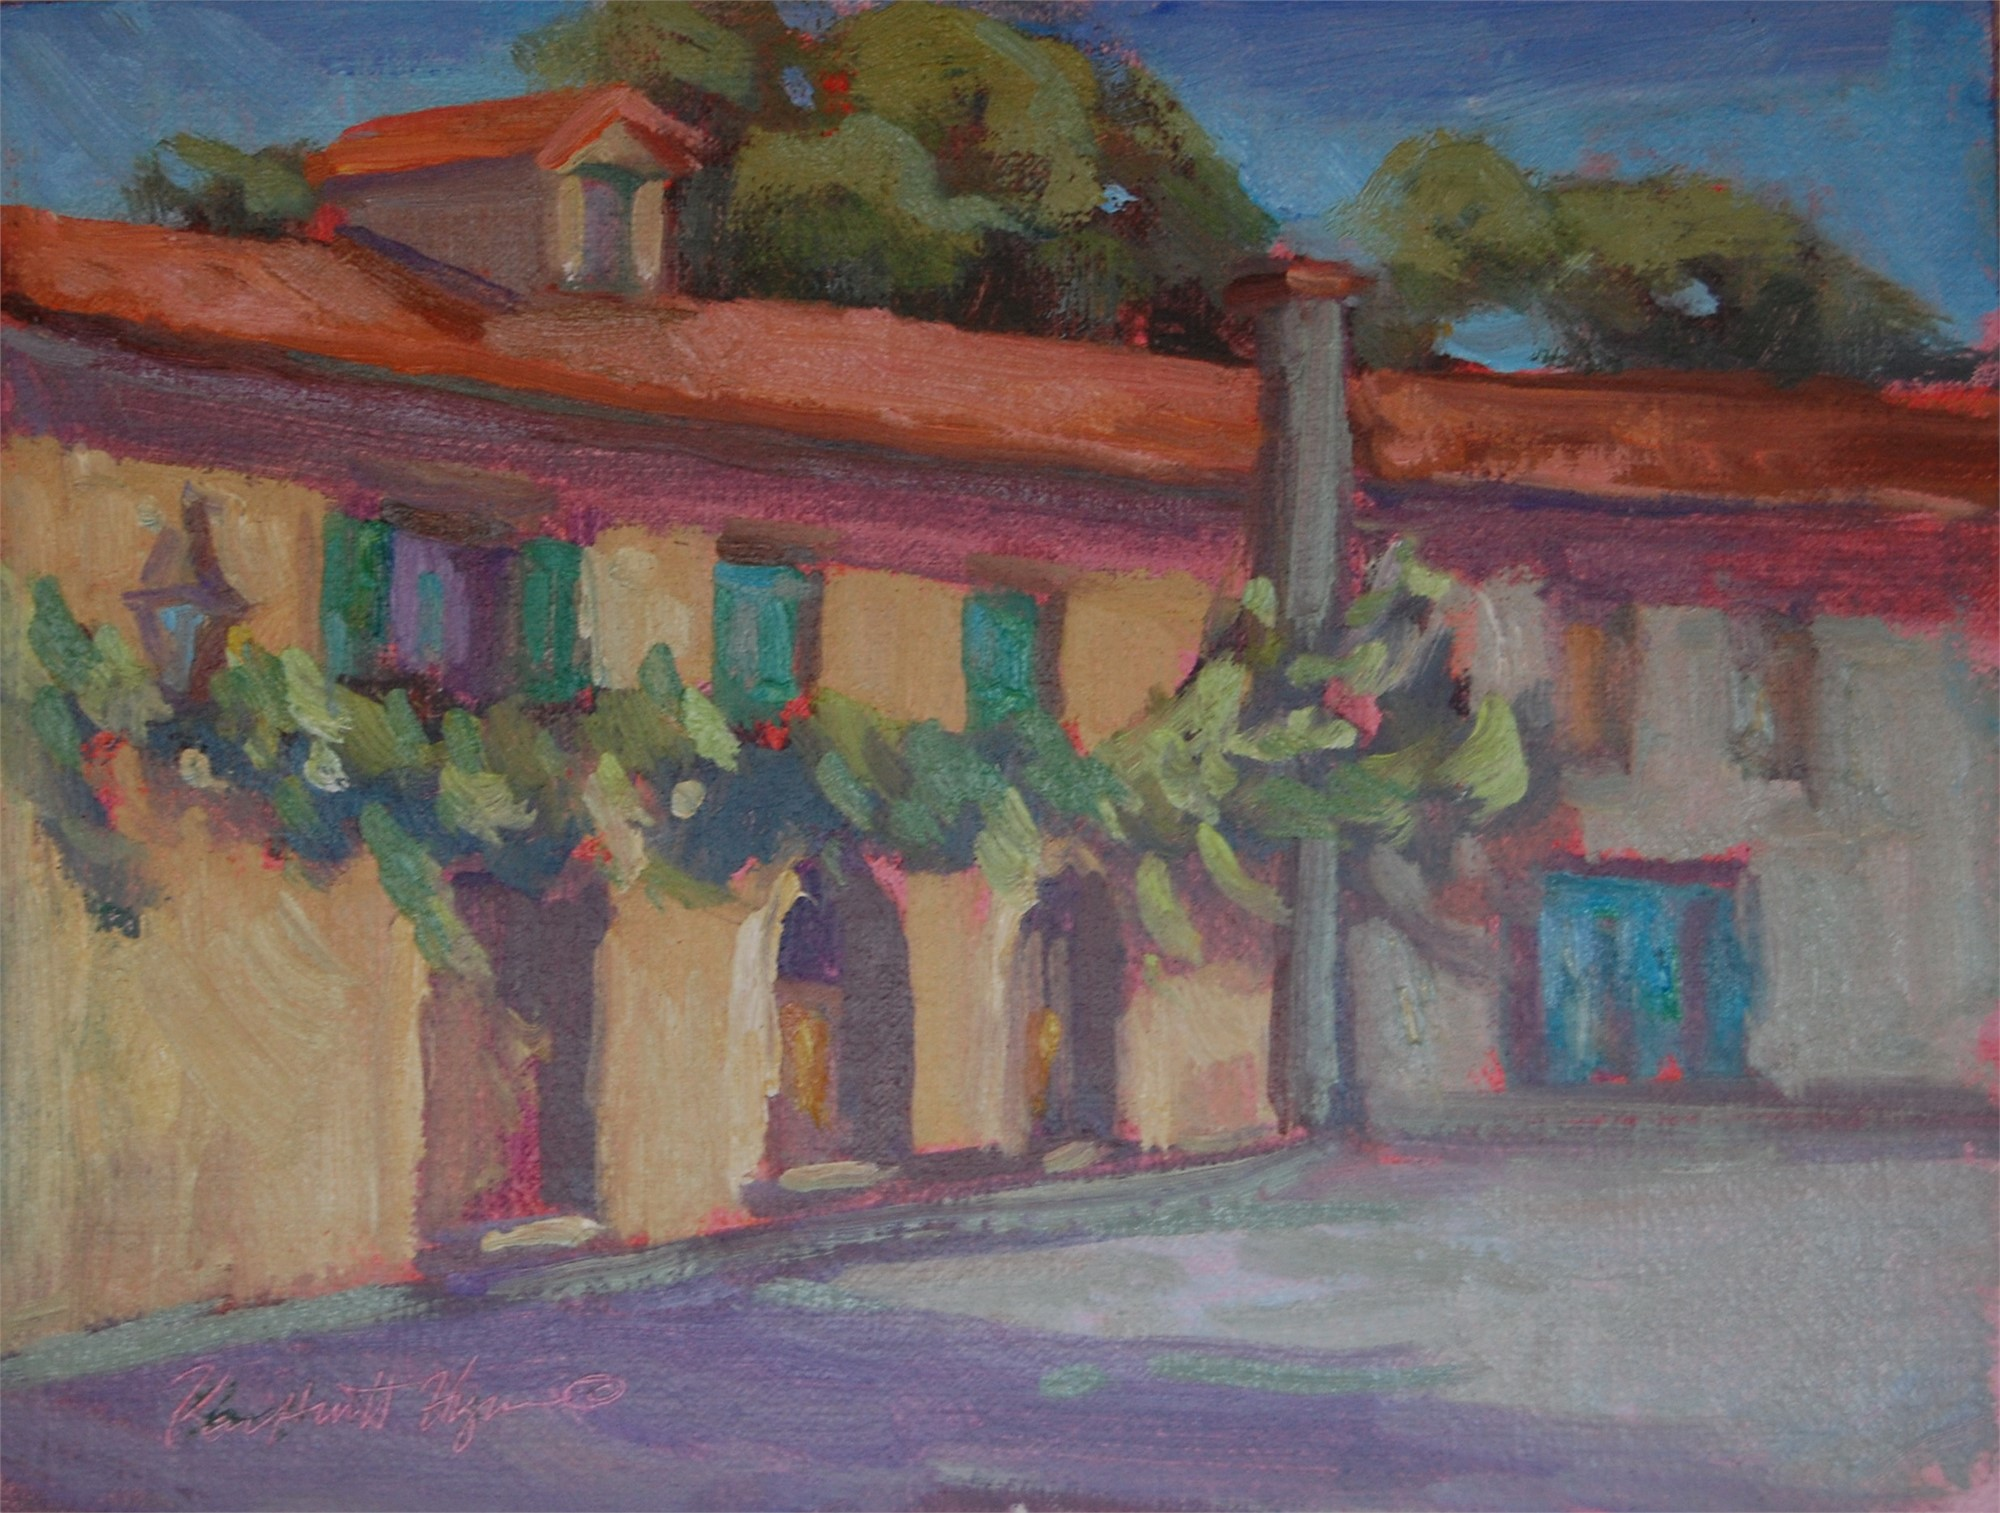 Tuscan Village by Karen Hewitt Hagan